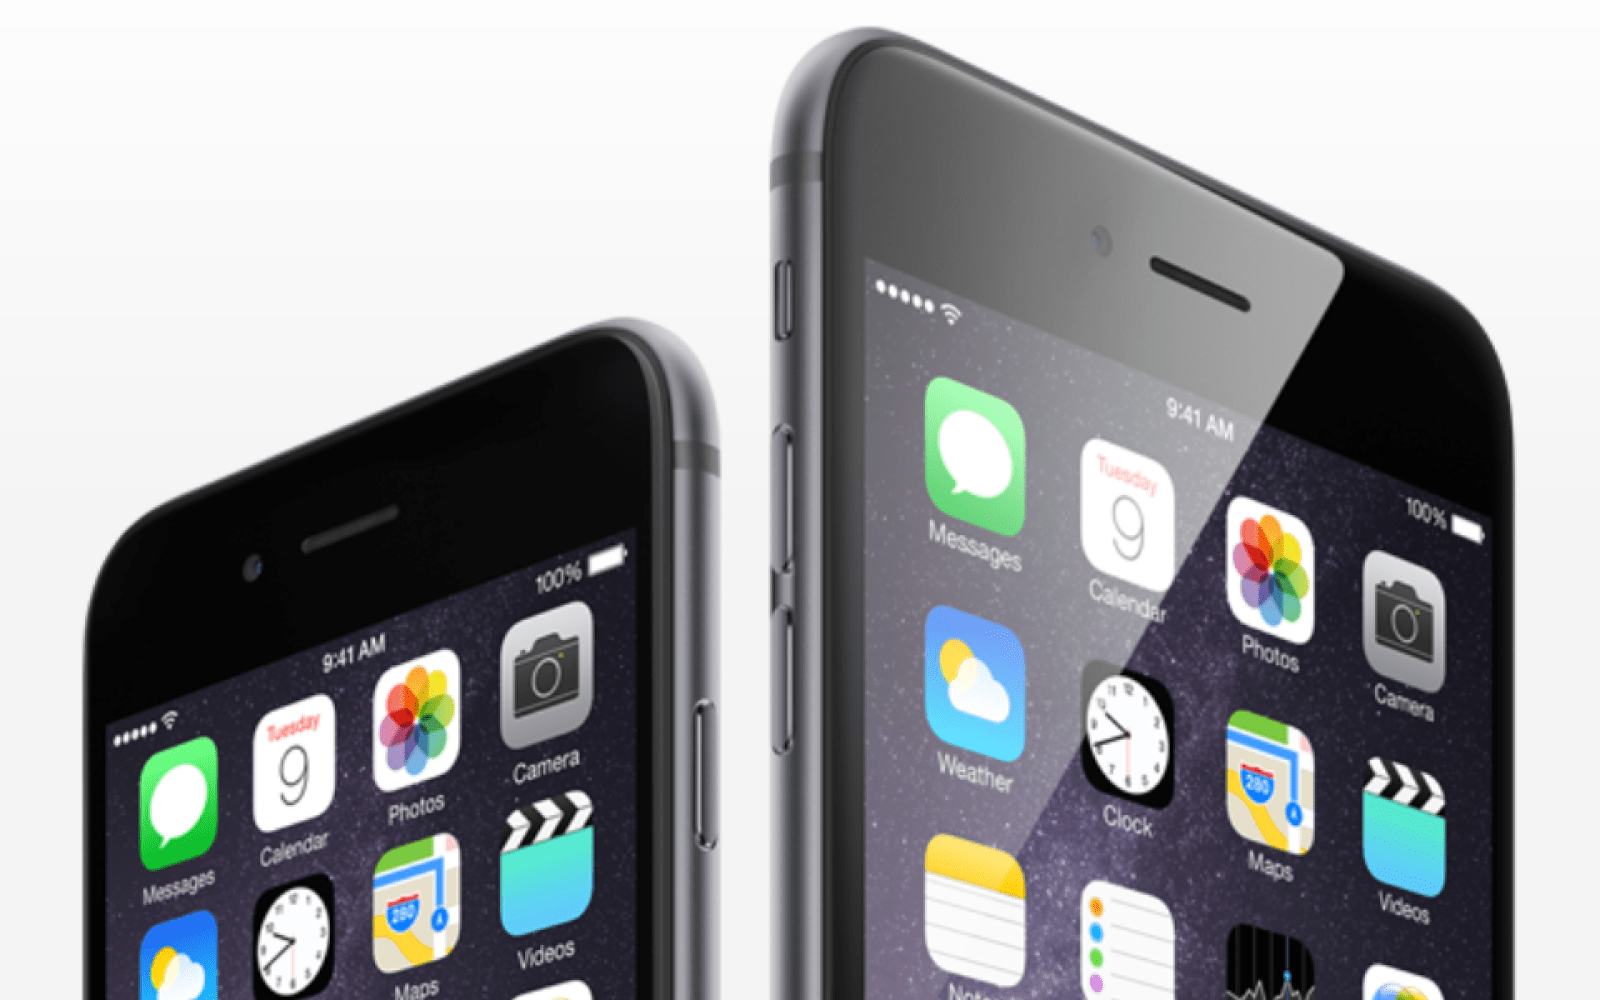 Boost Mobile to offer prepaid iPhone 6/6 Plus for $100 off starting Oct 17